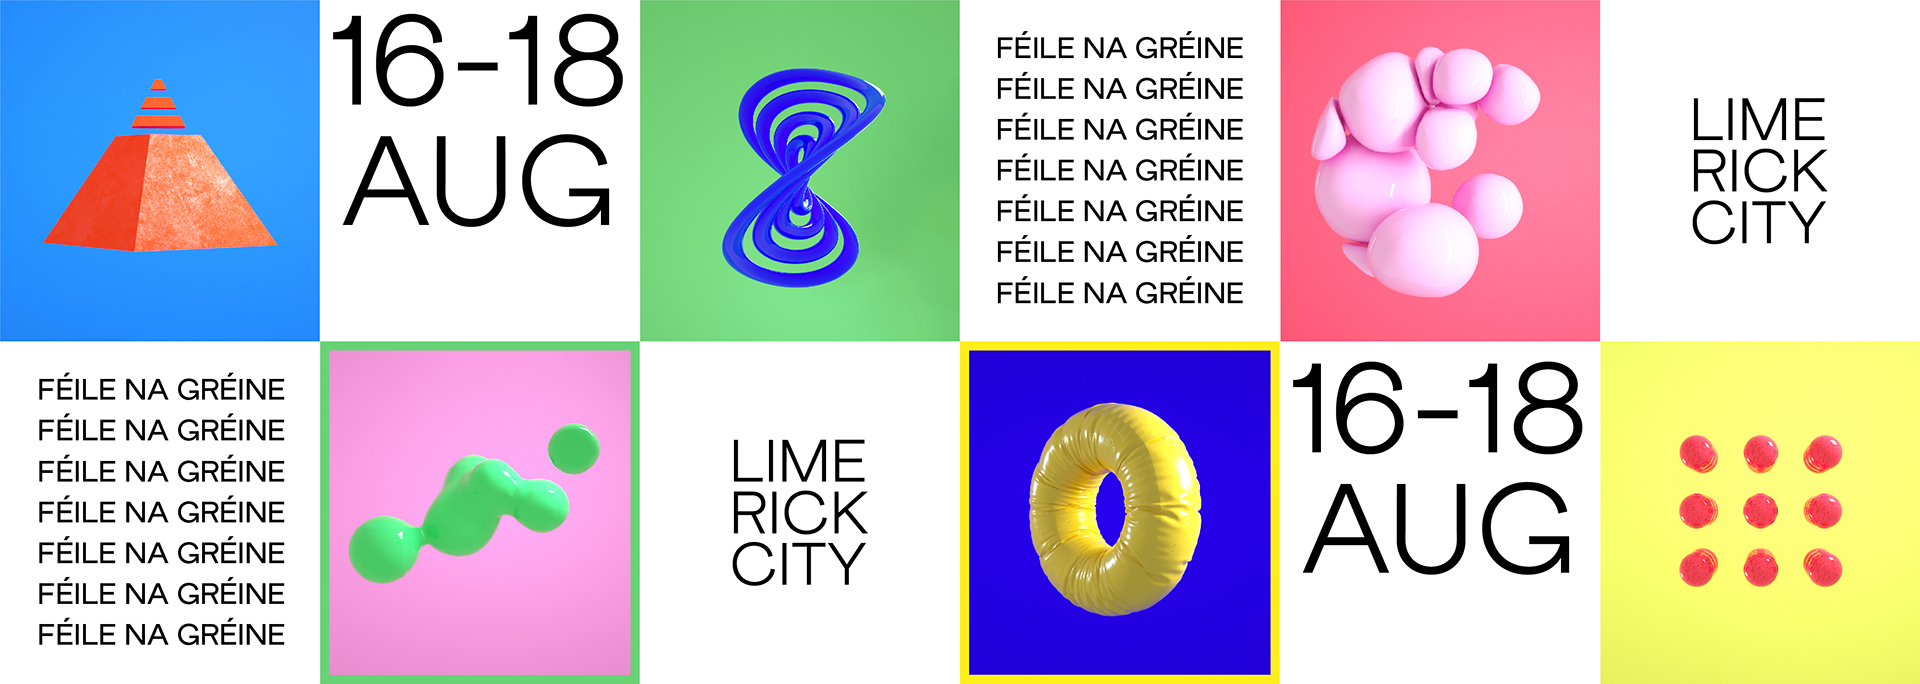 Feile na Greine Limerick City Music Trail Piquant Media Graphic Design